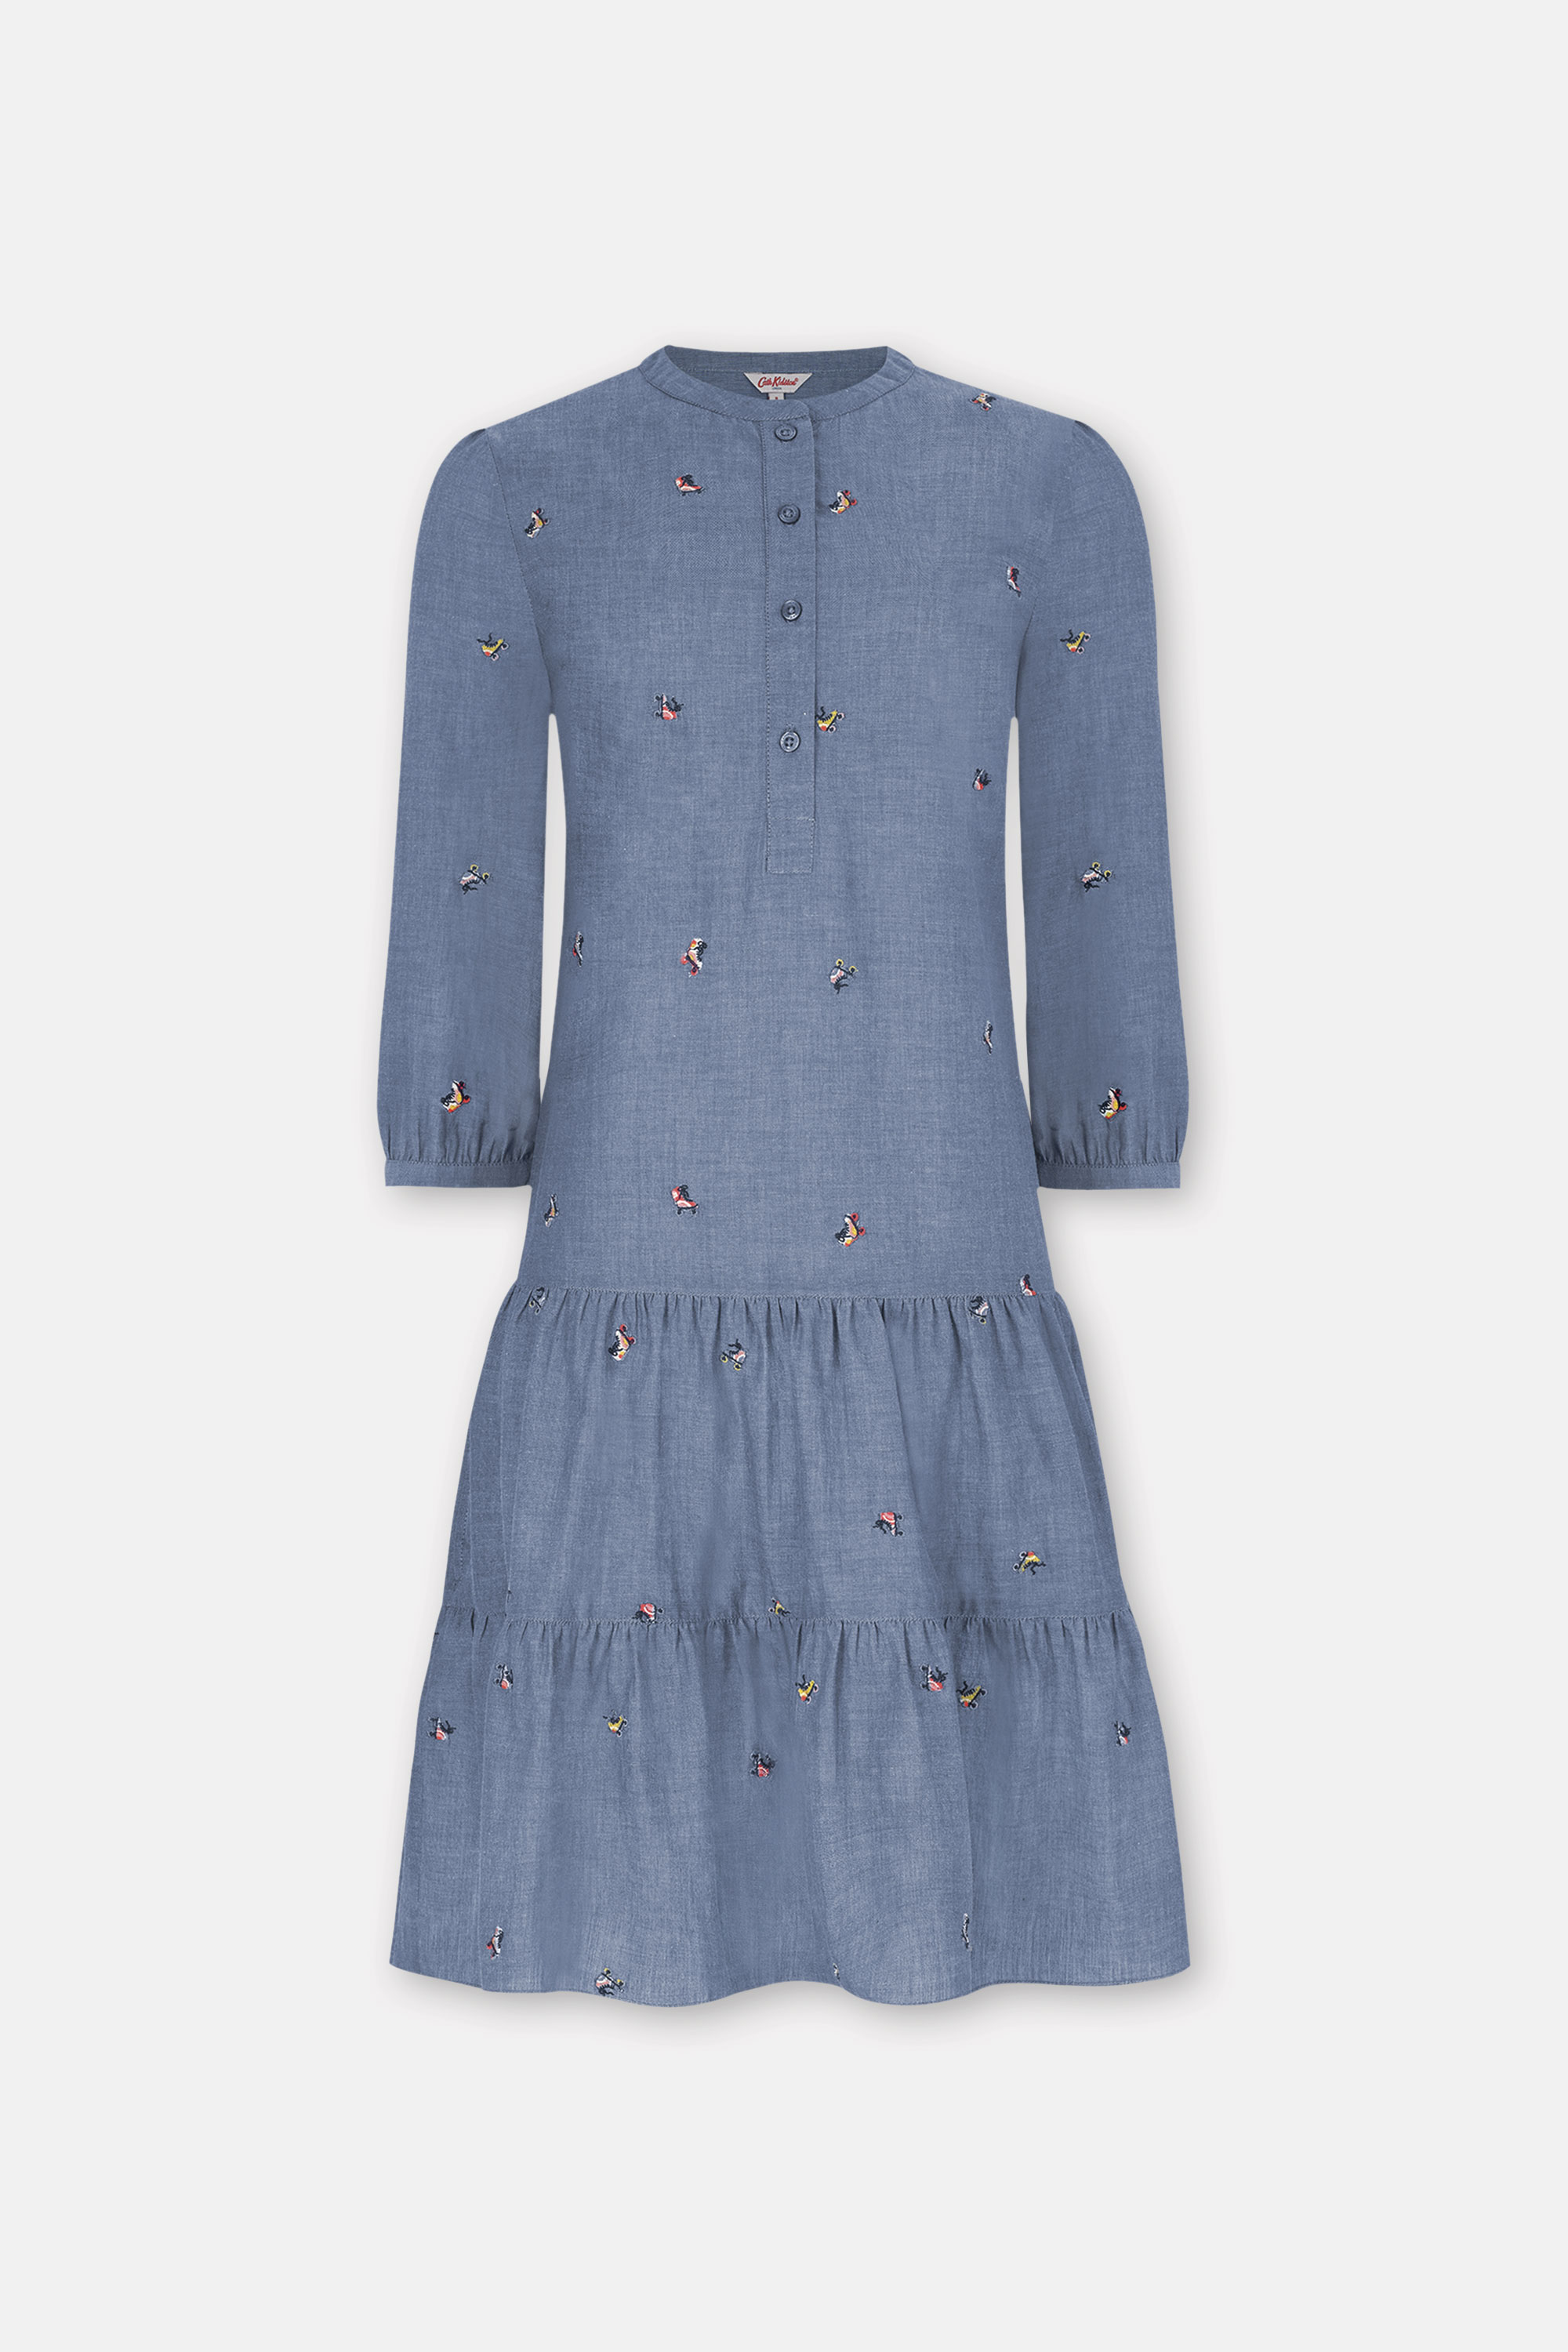 Cath Kidston Embroidered A-Line Dress in Blue, Rollerskates, 100% Cotton, 16